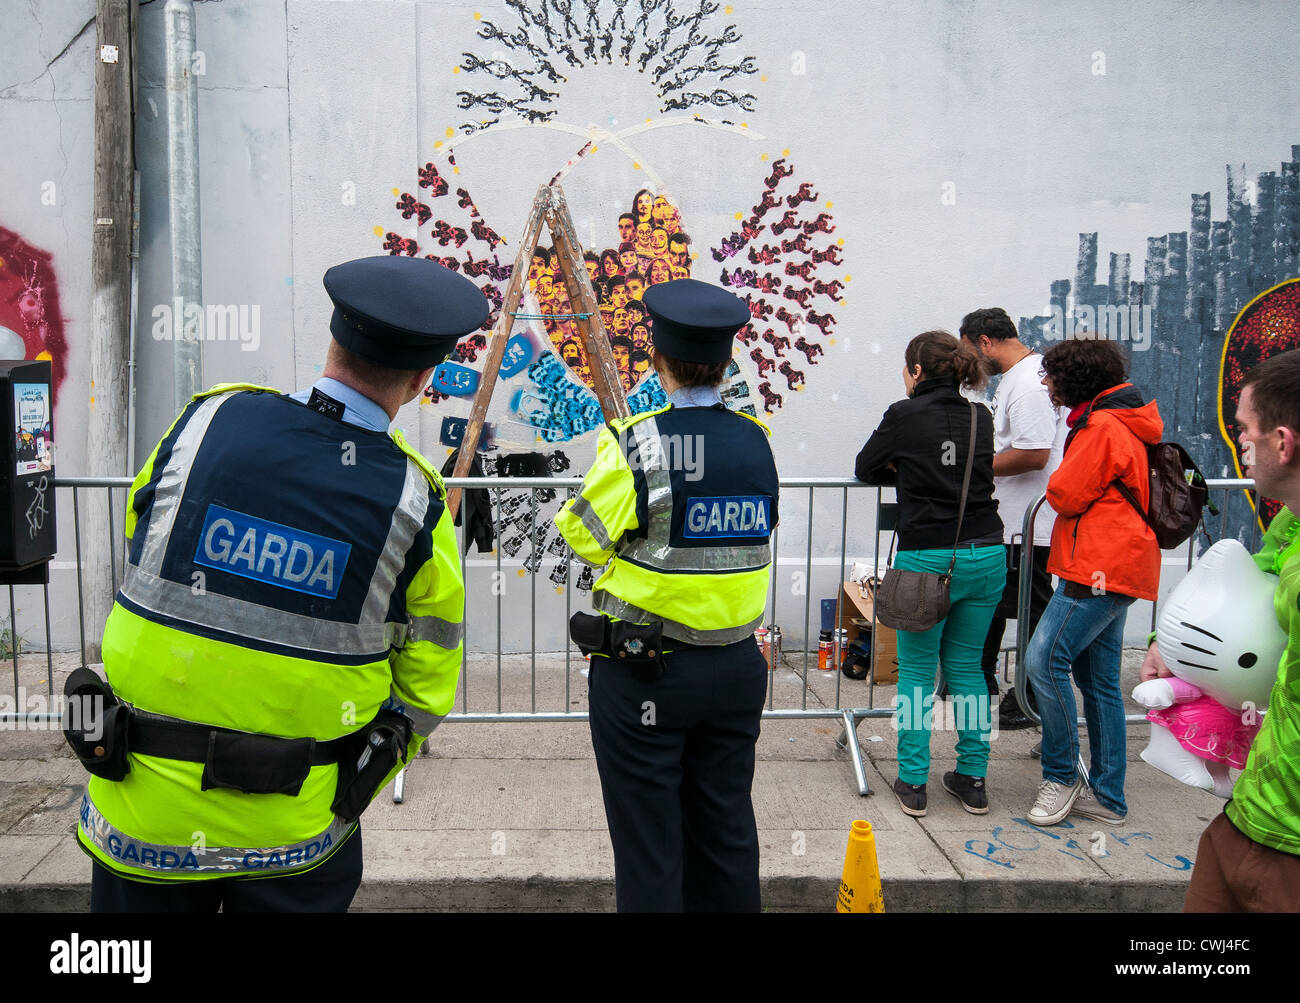 The Garda watching a stencil graffiti artist at work on Hanover Quay in Dublin - Stock Image